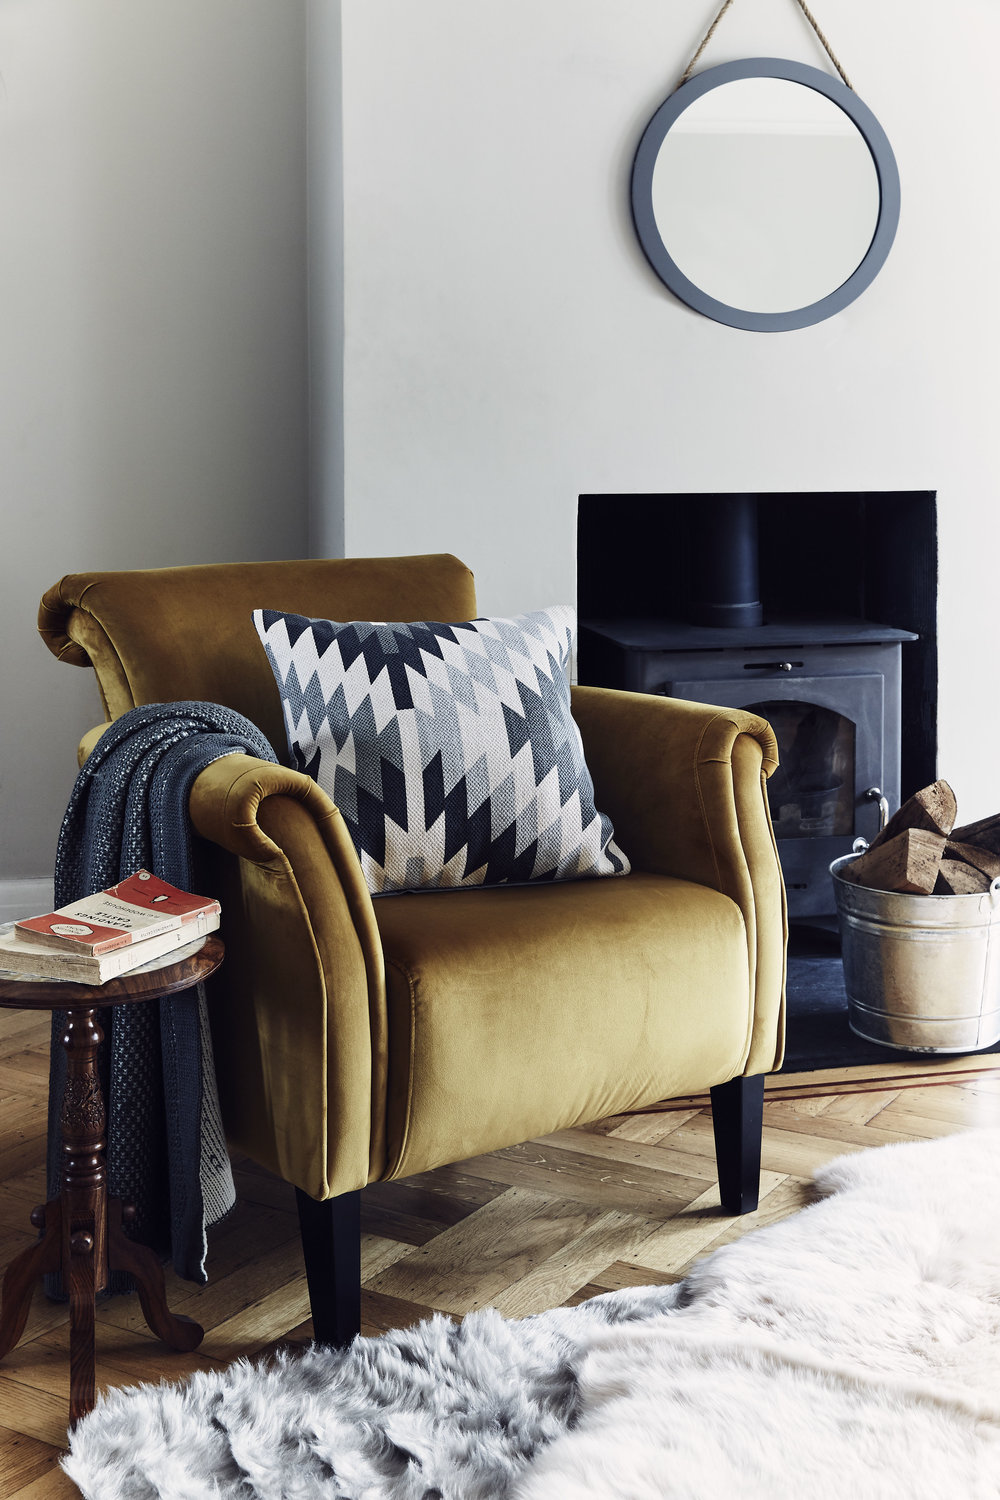 VELVET CHAIRS - Velvet chairs come in all shapes and sizes and are versatile enough to be used in almost any room of the home. From a cosy armchair by the fire to on-trend velvet dining chairs and bedroom benches, velvet is set to take over every room in 2019, and we love it!JD Williams Desire Accent Chair in Saffron: £199.00